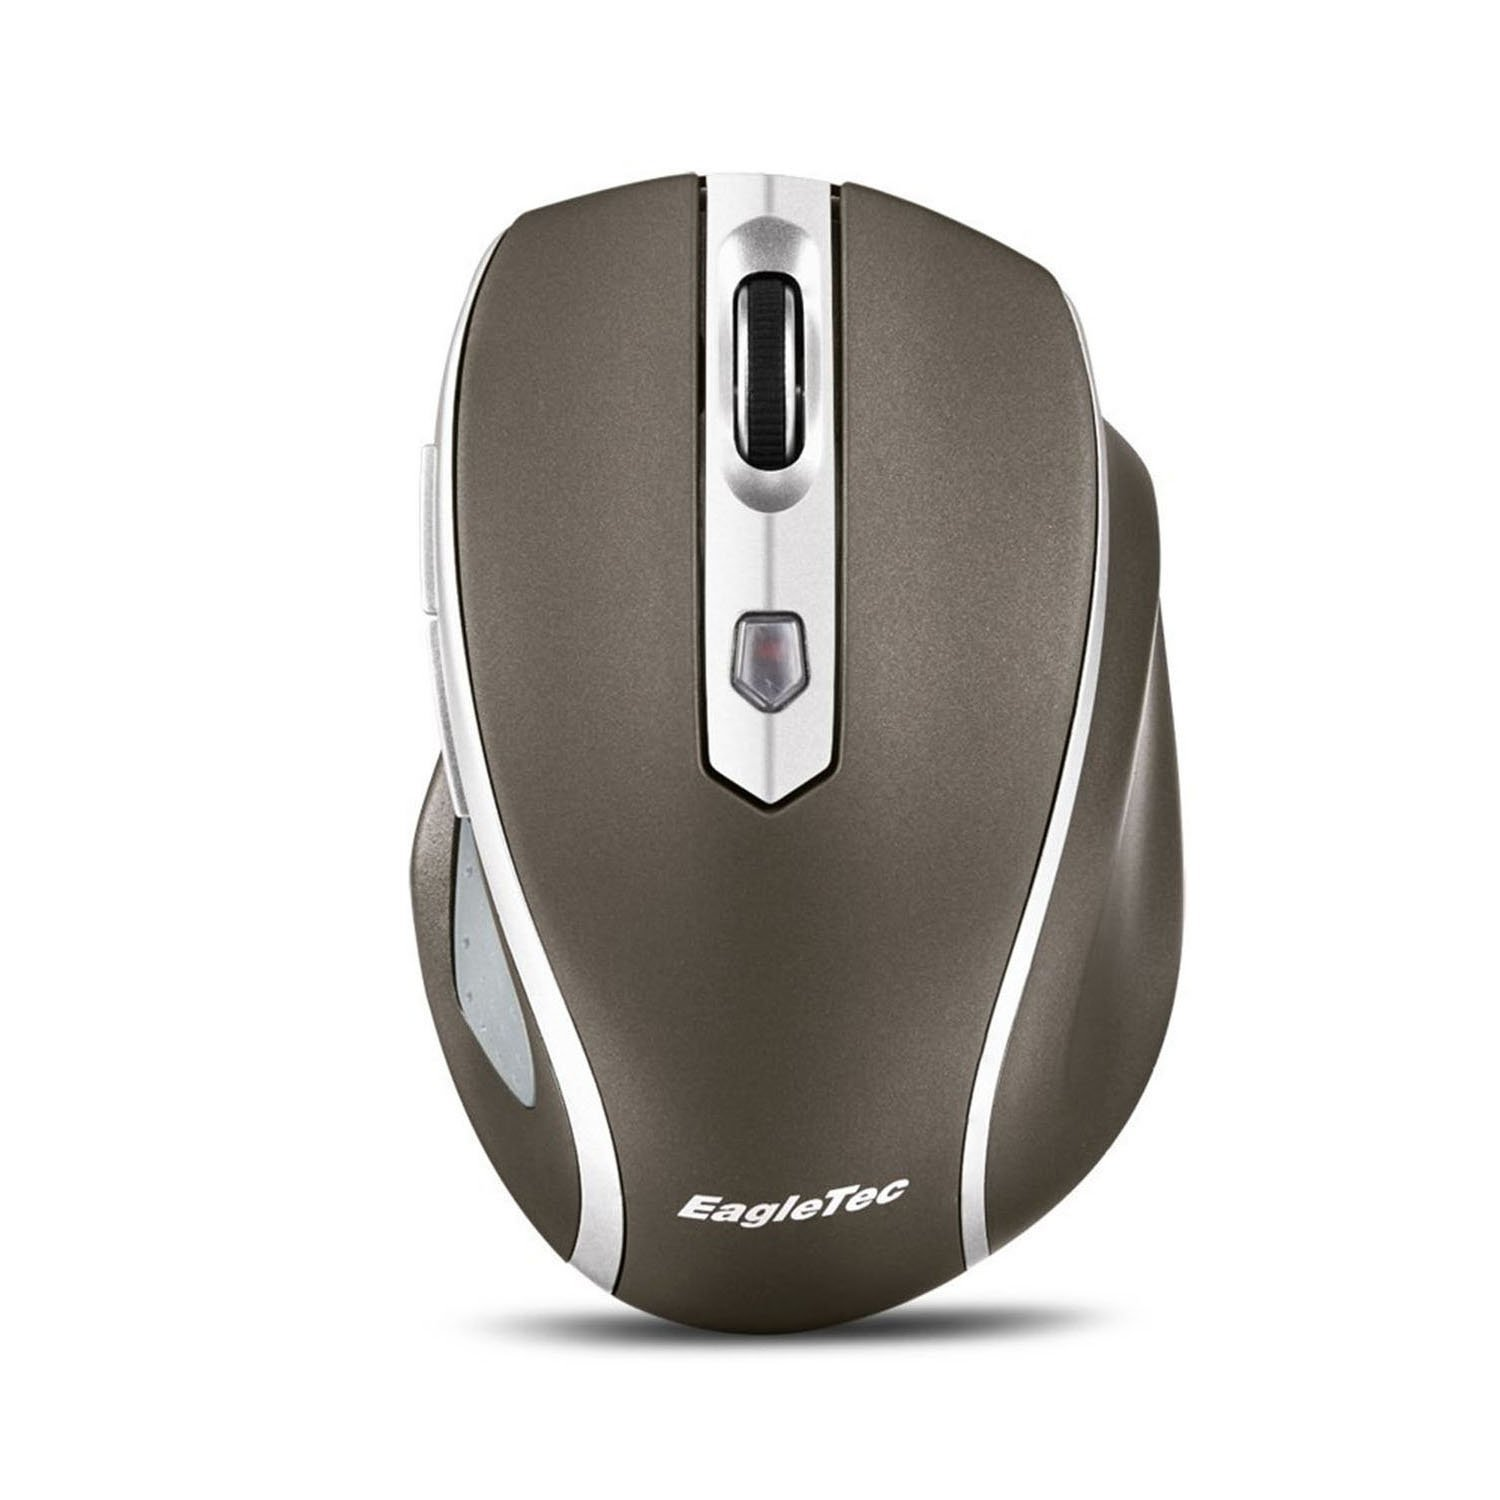 Wireless Mice Usb Optical Mouse 800 Dpi Eagletec Mr5m2509 24ghz Switchable 1000 1500 2000